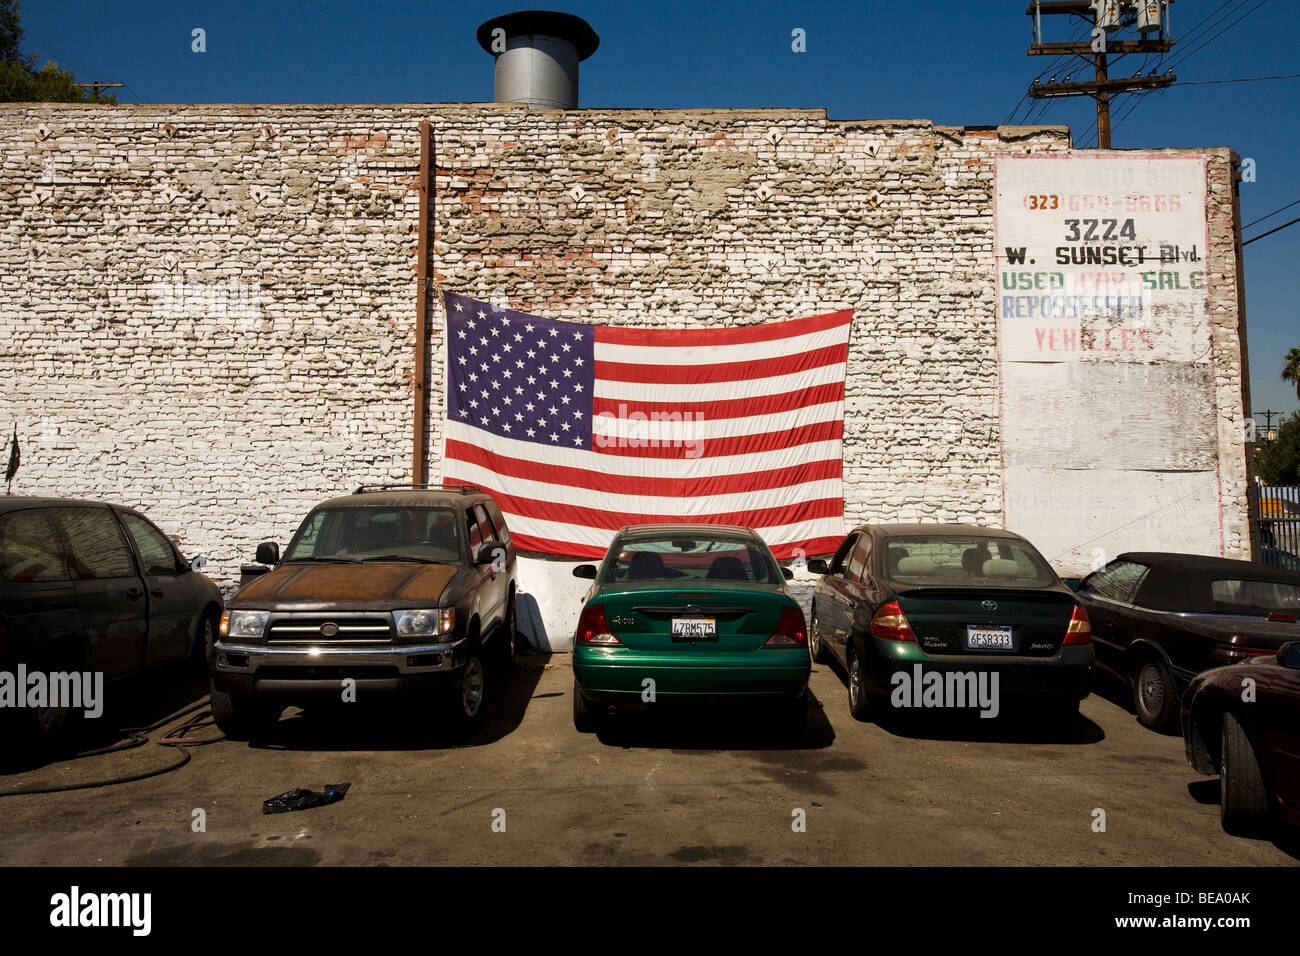 Used Car Stock Photos Amp Used Car Stock Images Alamy